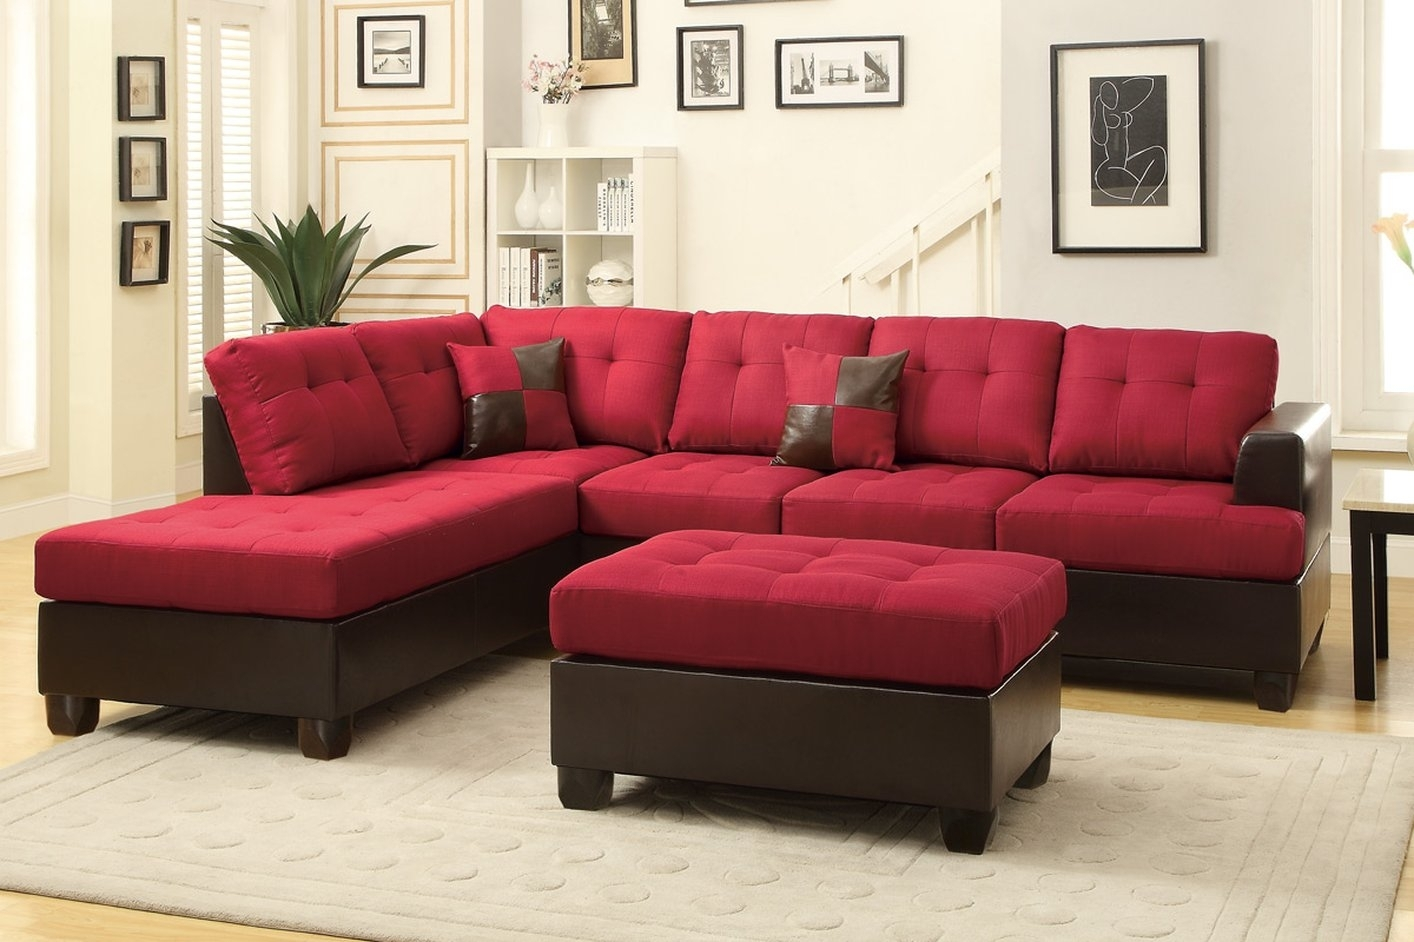 The Most Popular Red And Black Sectional Sofa 31 About Remodel With Regard To Red Black Sectional Sofas (Image 10 of 10)